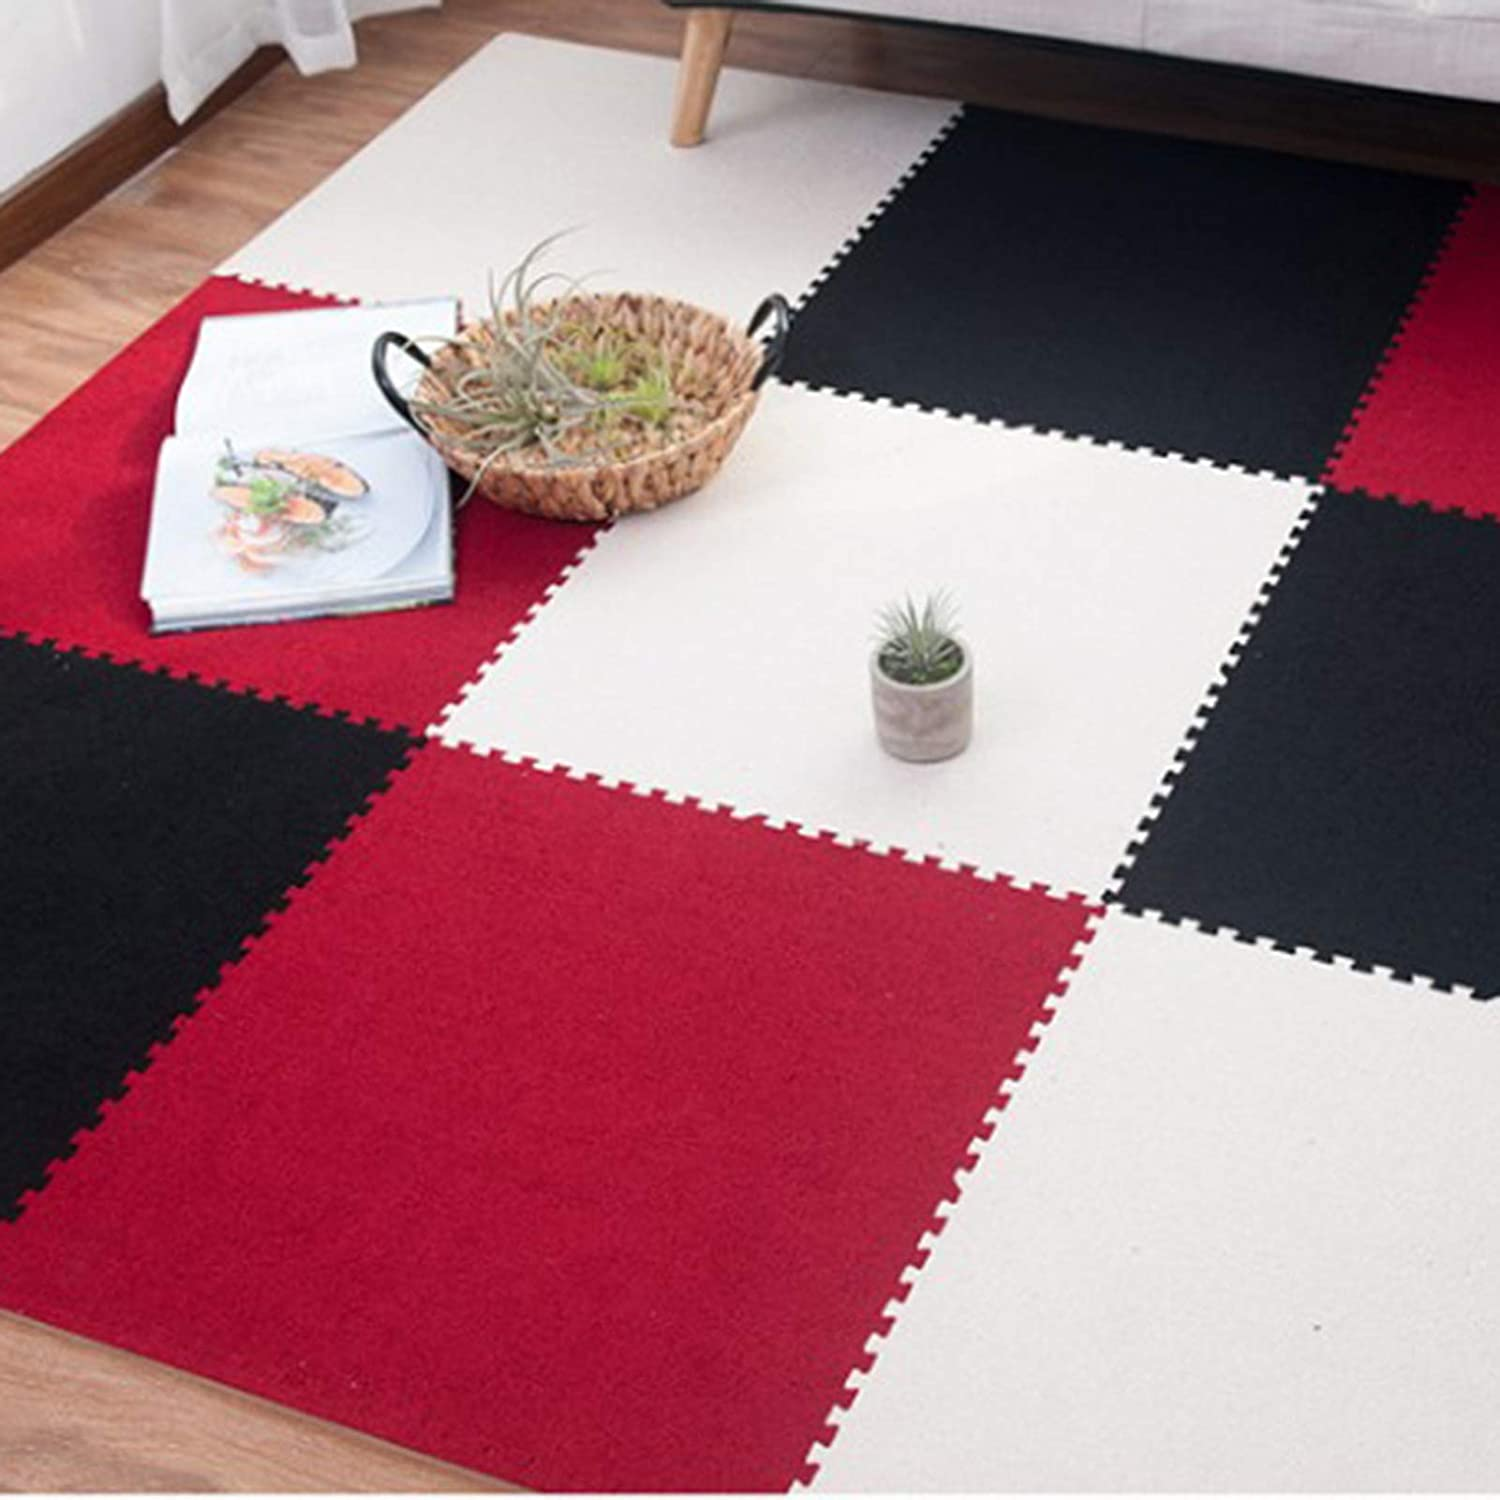 ASPZQ Play Mats for Children Reduction Fo Good Noise New product! New type Flexibility Genuine